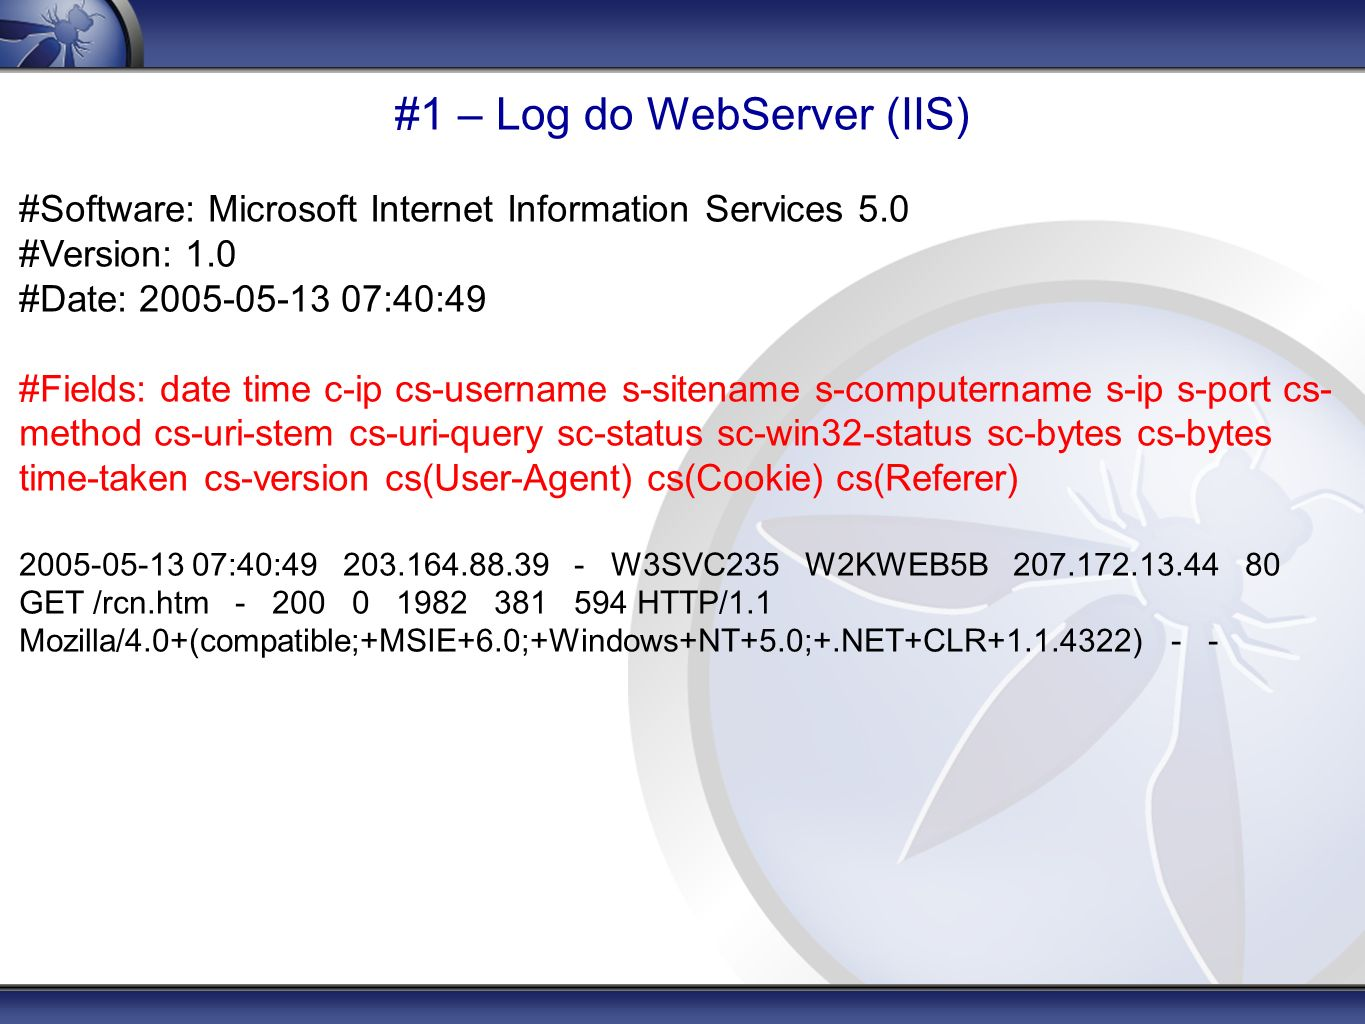 #1 – Log do WebServer (IIS) #Software: Microsoft Internet Information Services 5.0 #Version: 1.0 #Date: 2005-05-13 07:40:49 #Fields: date time c-ip cs